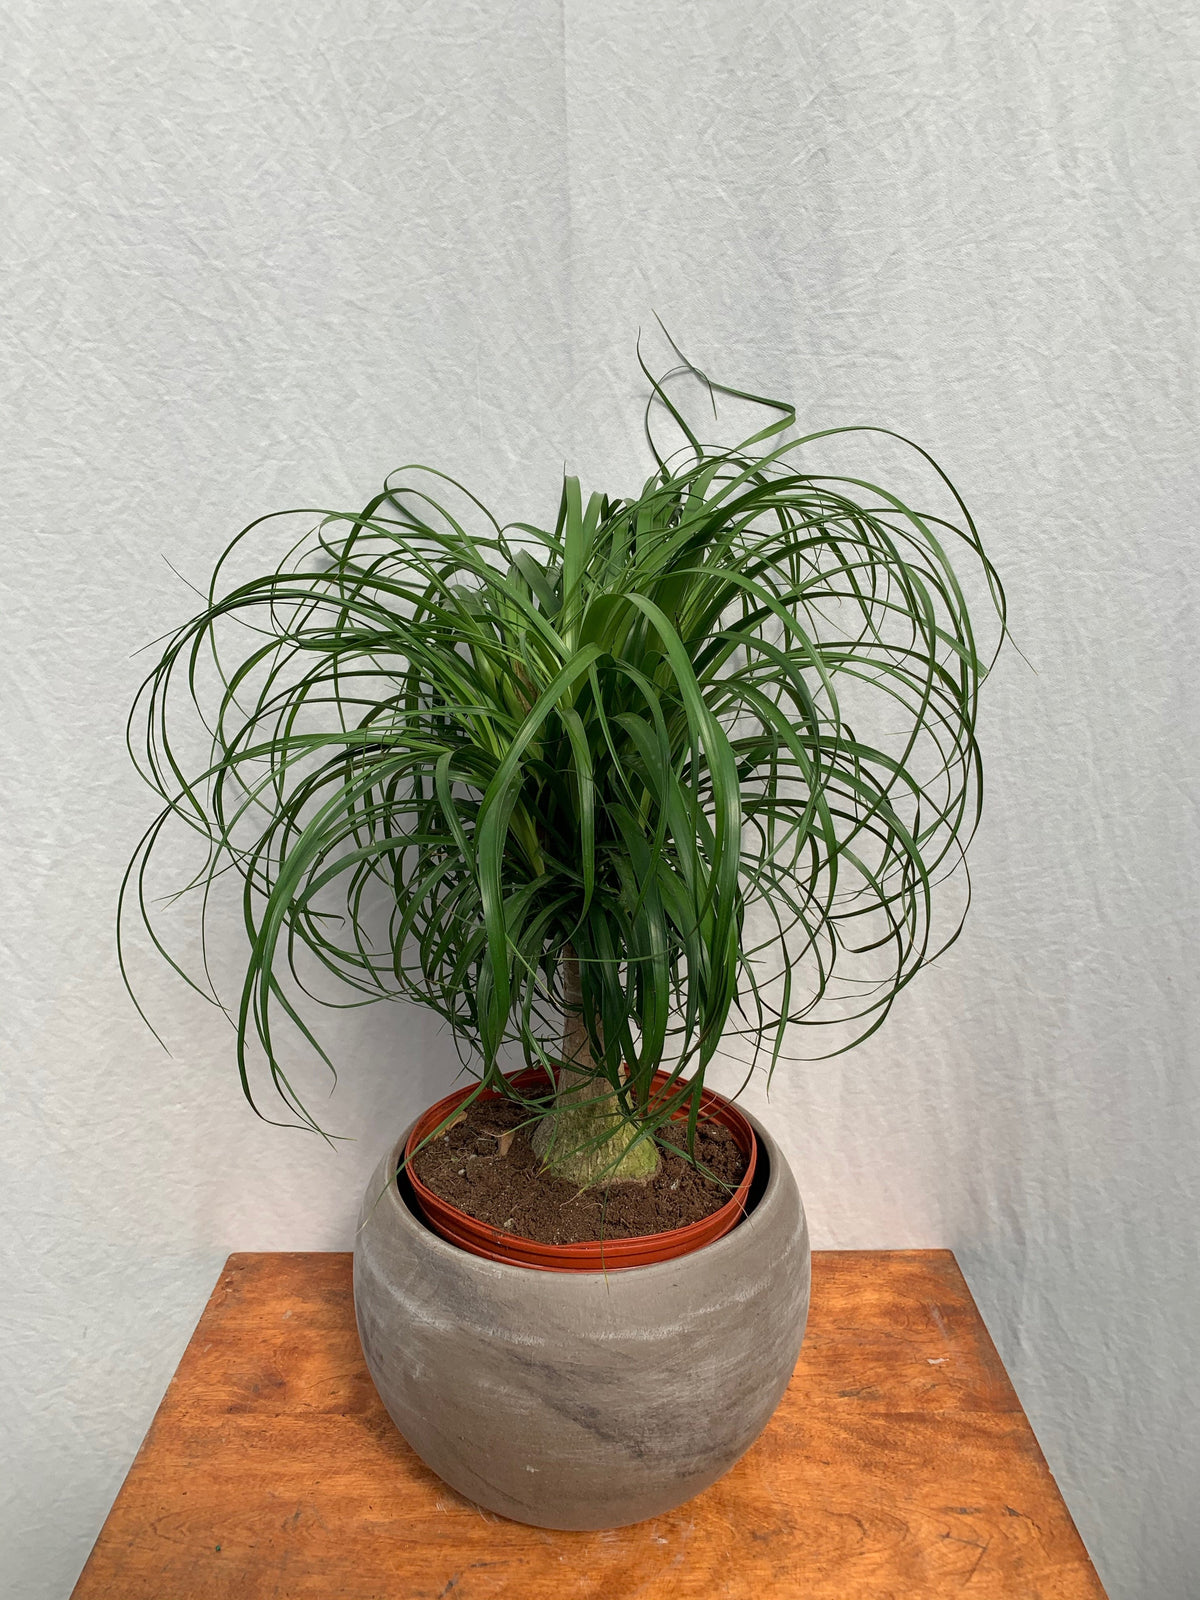 Ponytail Palm 'Beaucarnia recurvata'